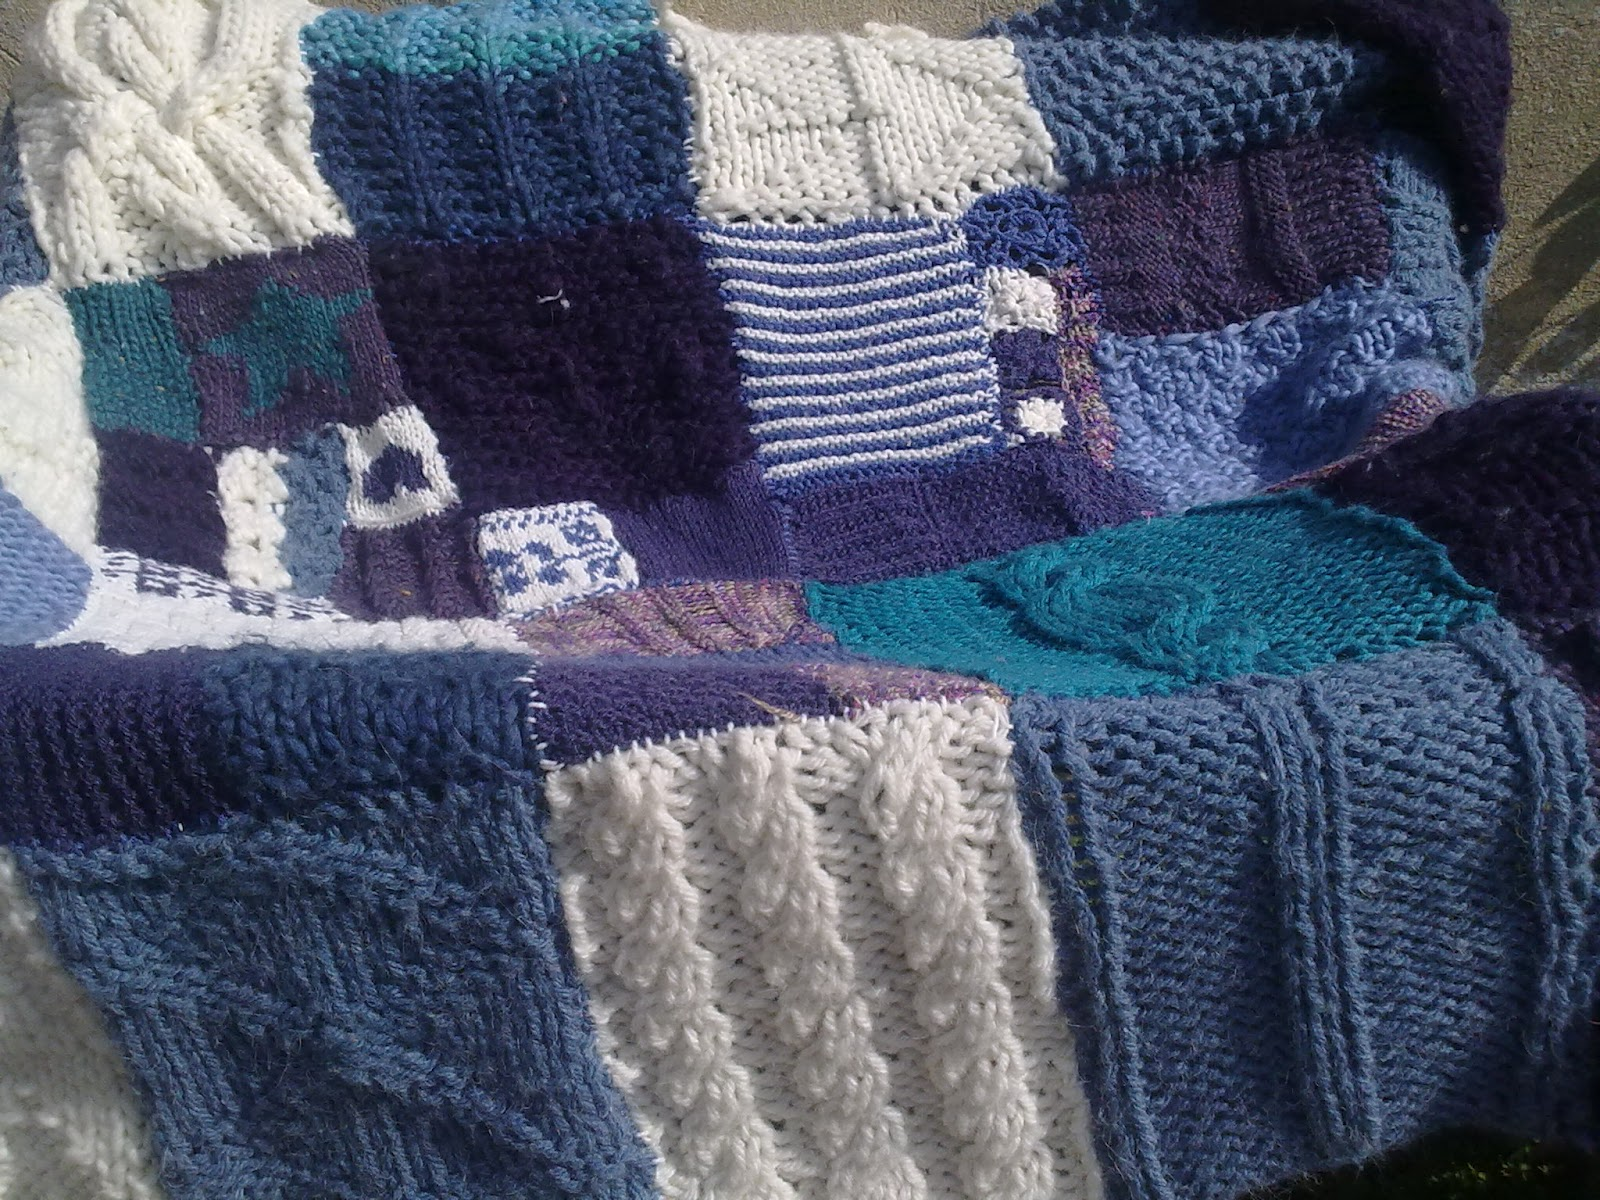 Extemporary knitting: The learn to knit Afghan AKA